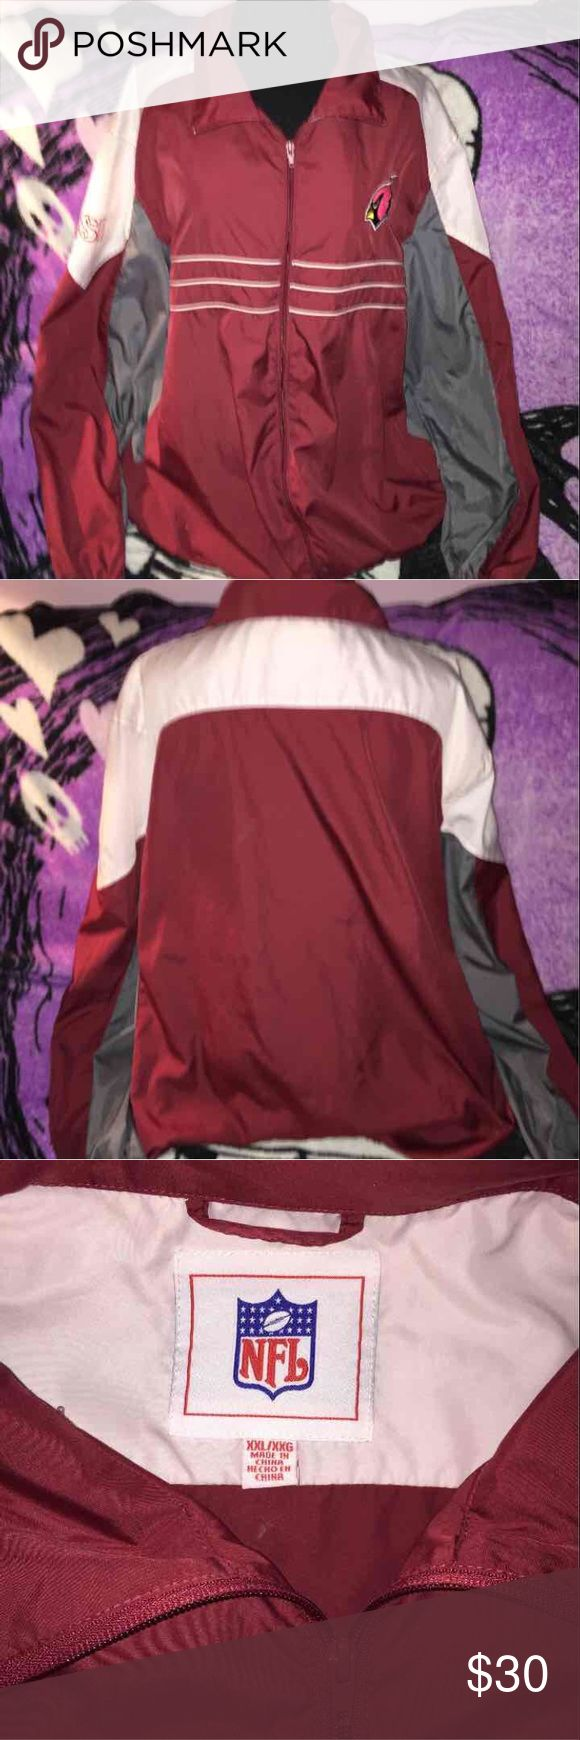 NFL Arizona Cardinals windbreaker Can be unisex but was purchased as mens NFL official  100% polyester  Full zip up Red,gray & white In great condition  No visual flaws NFL Jackets & Coats Windbreakers